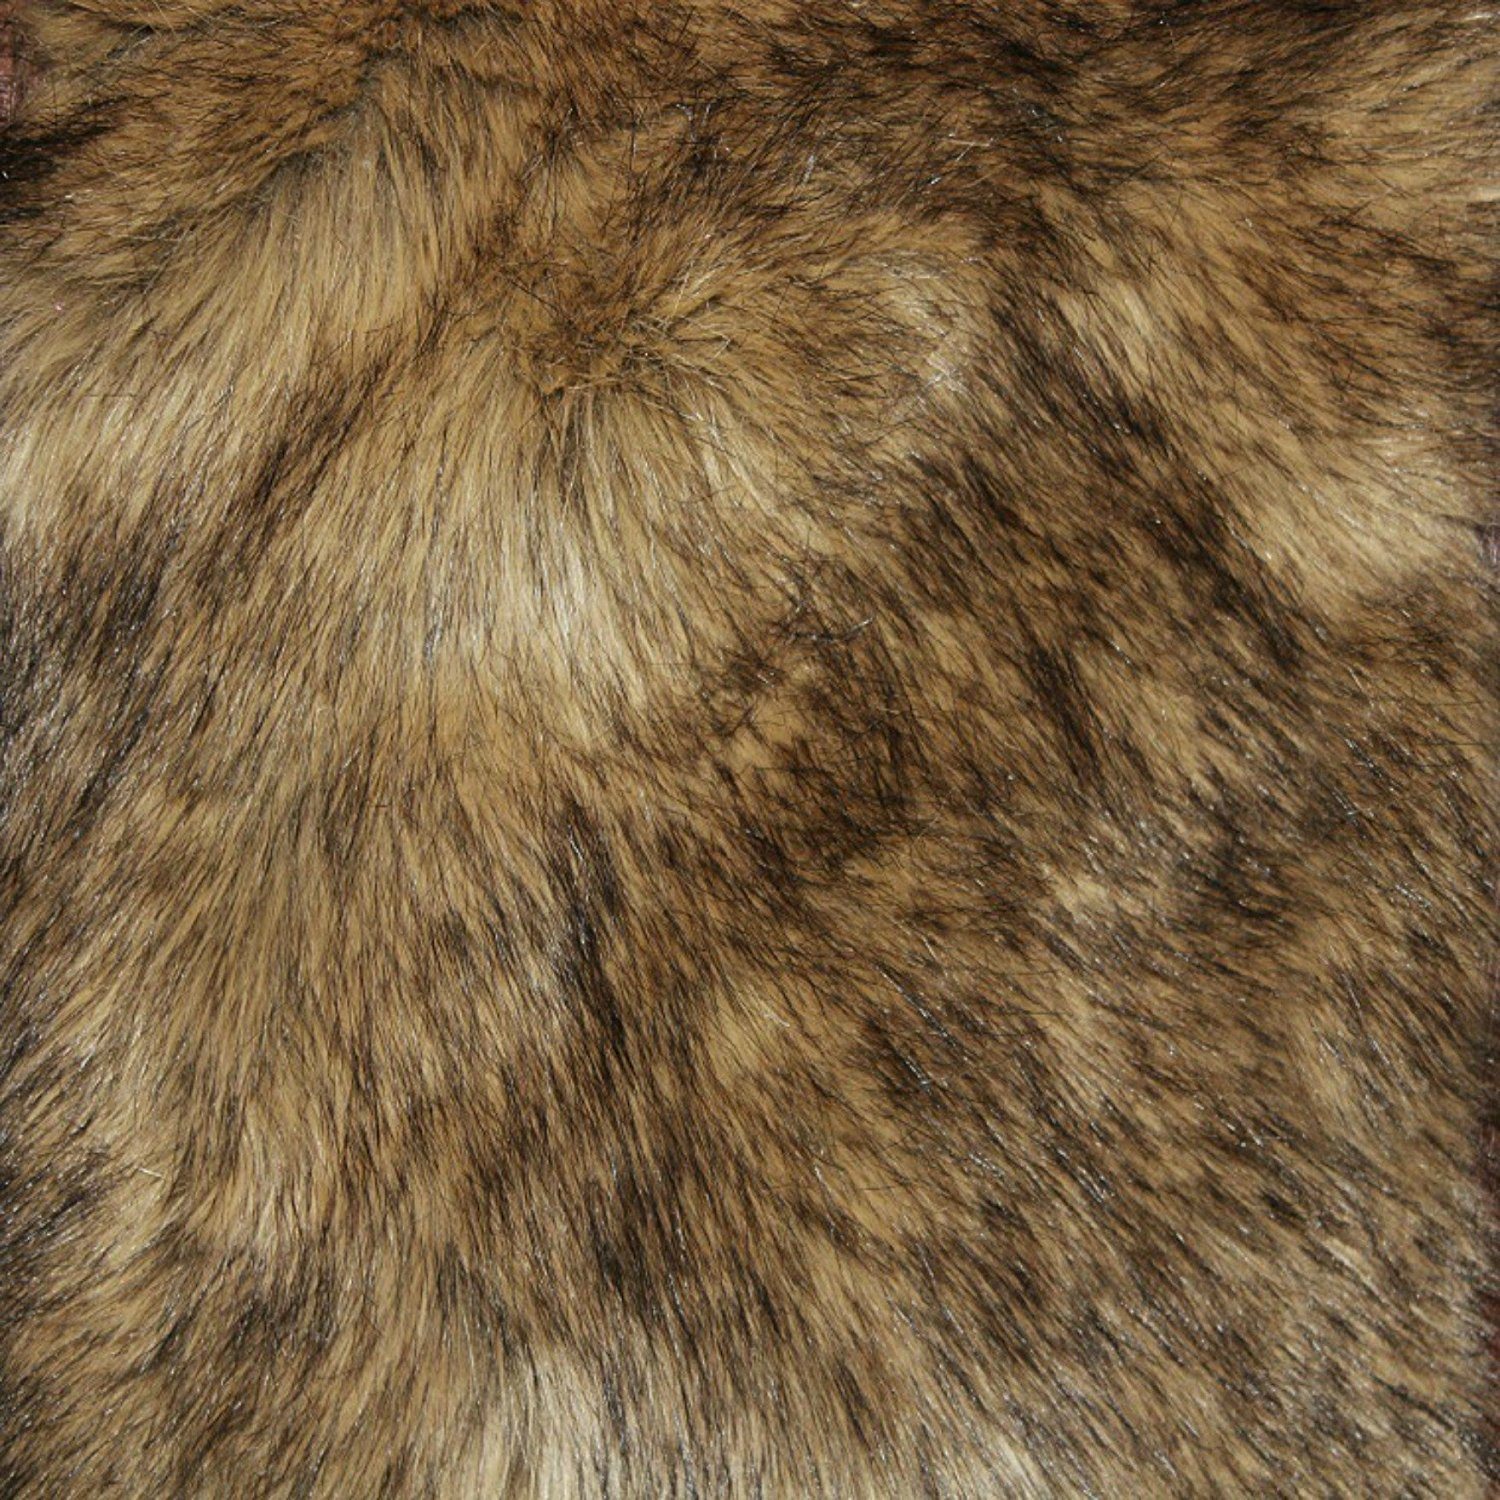 Amazon.com: Fur Accents Timber Wolf Pelt Rug Coyote Bear Skin Area ...